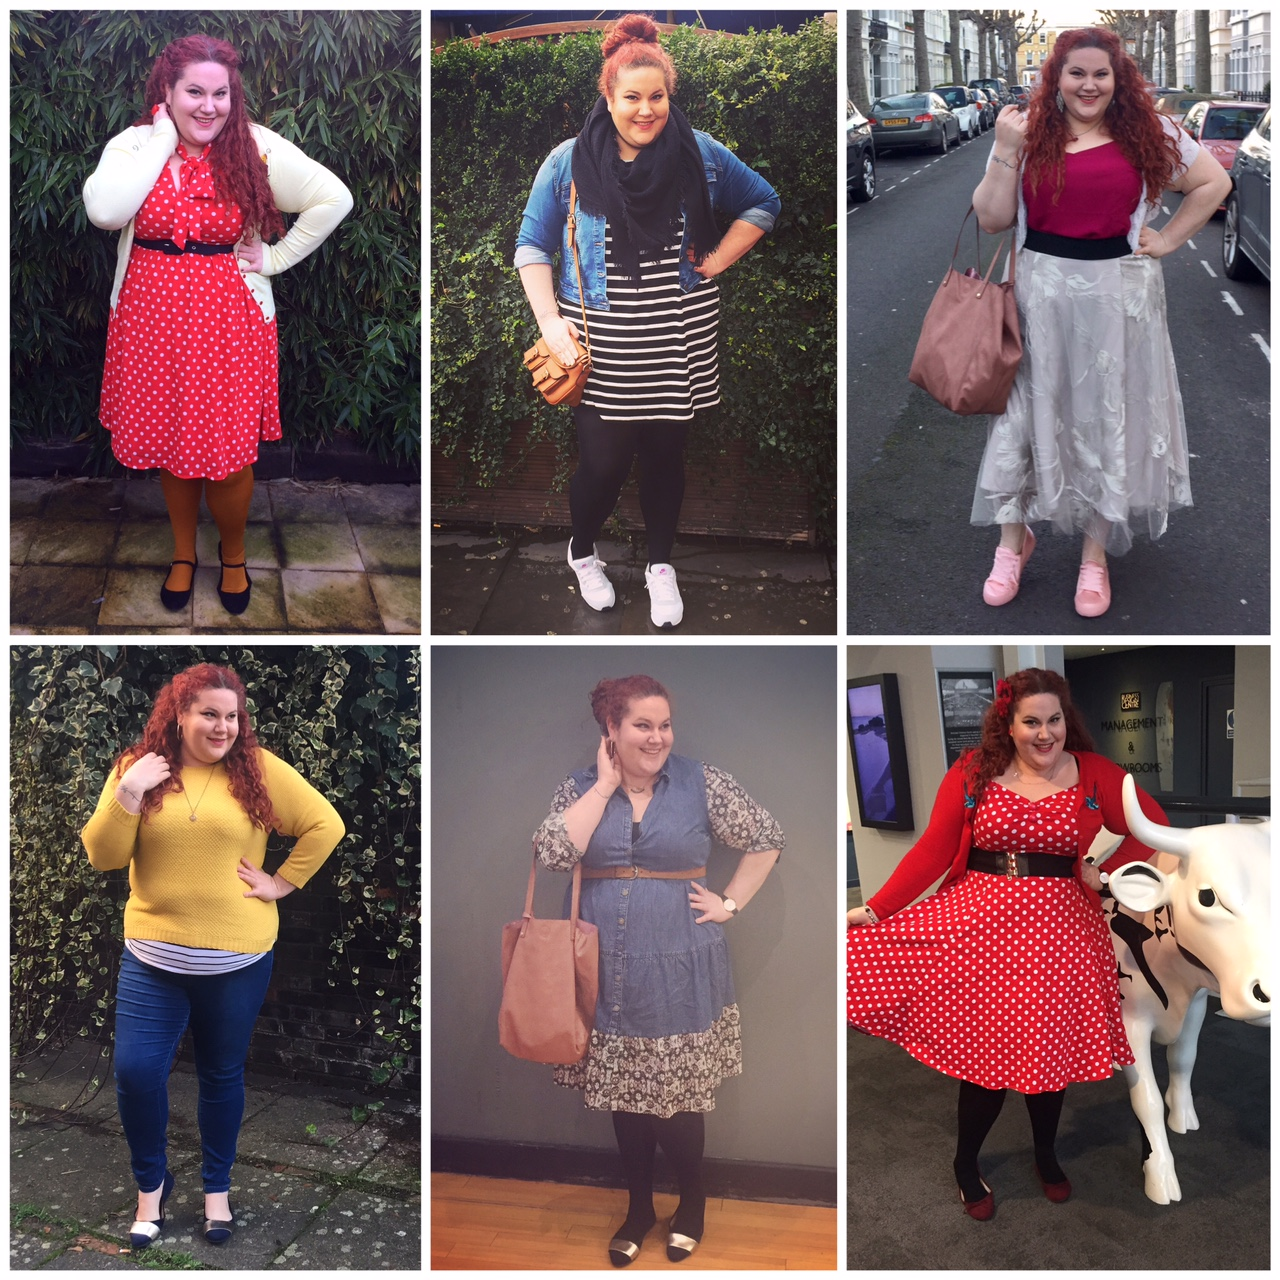 b277412155f4c I really enjoy doing these monthly round ups. It inspires me to keep  enjoying my wardrobe and be creative with the outfits I put together, and I  think it's ...